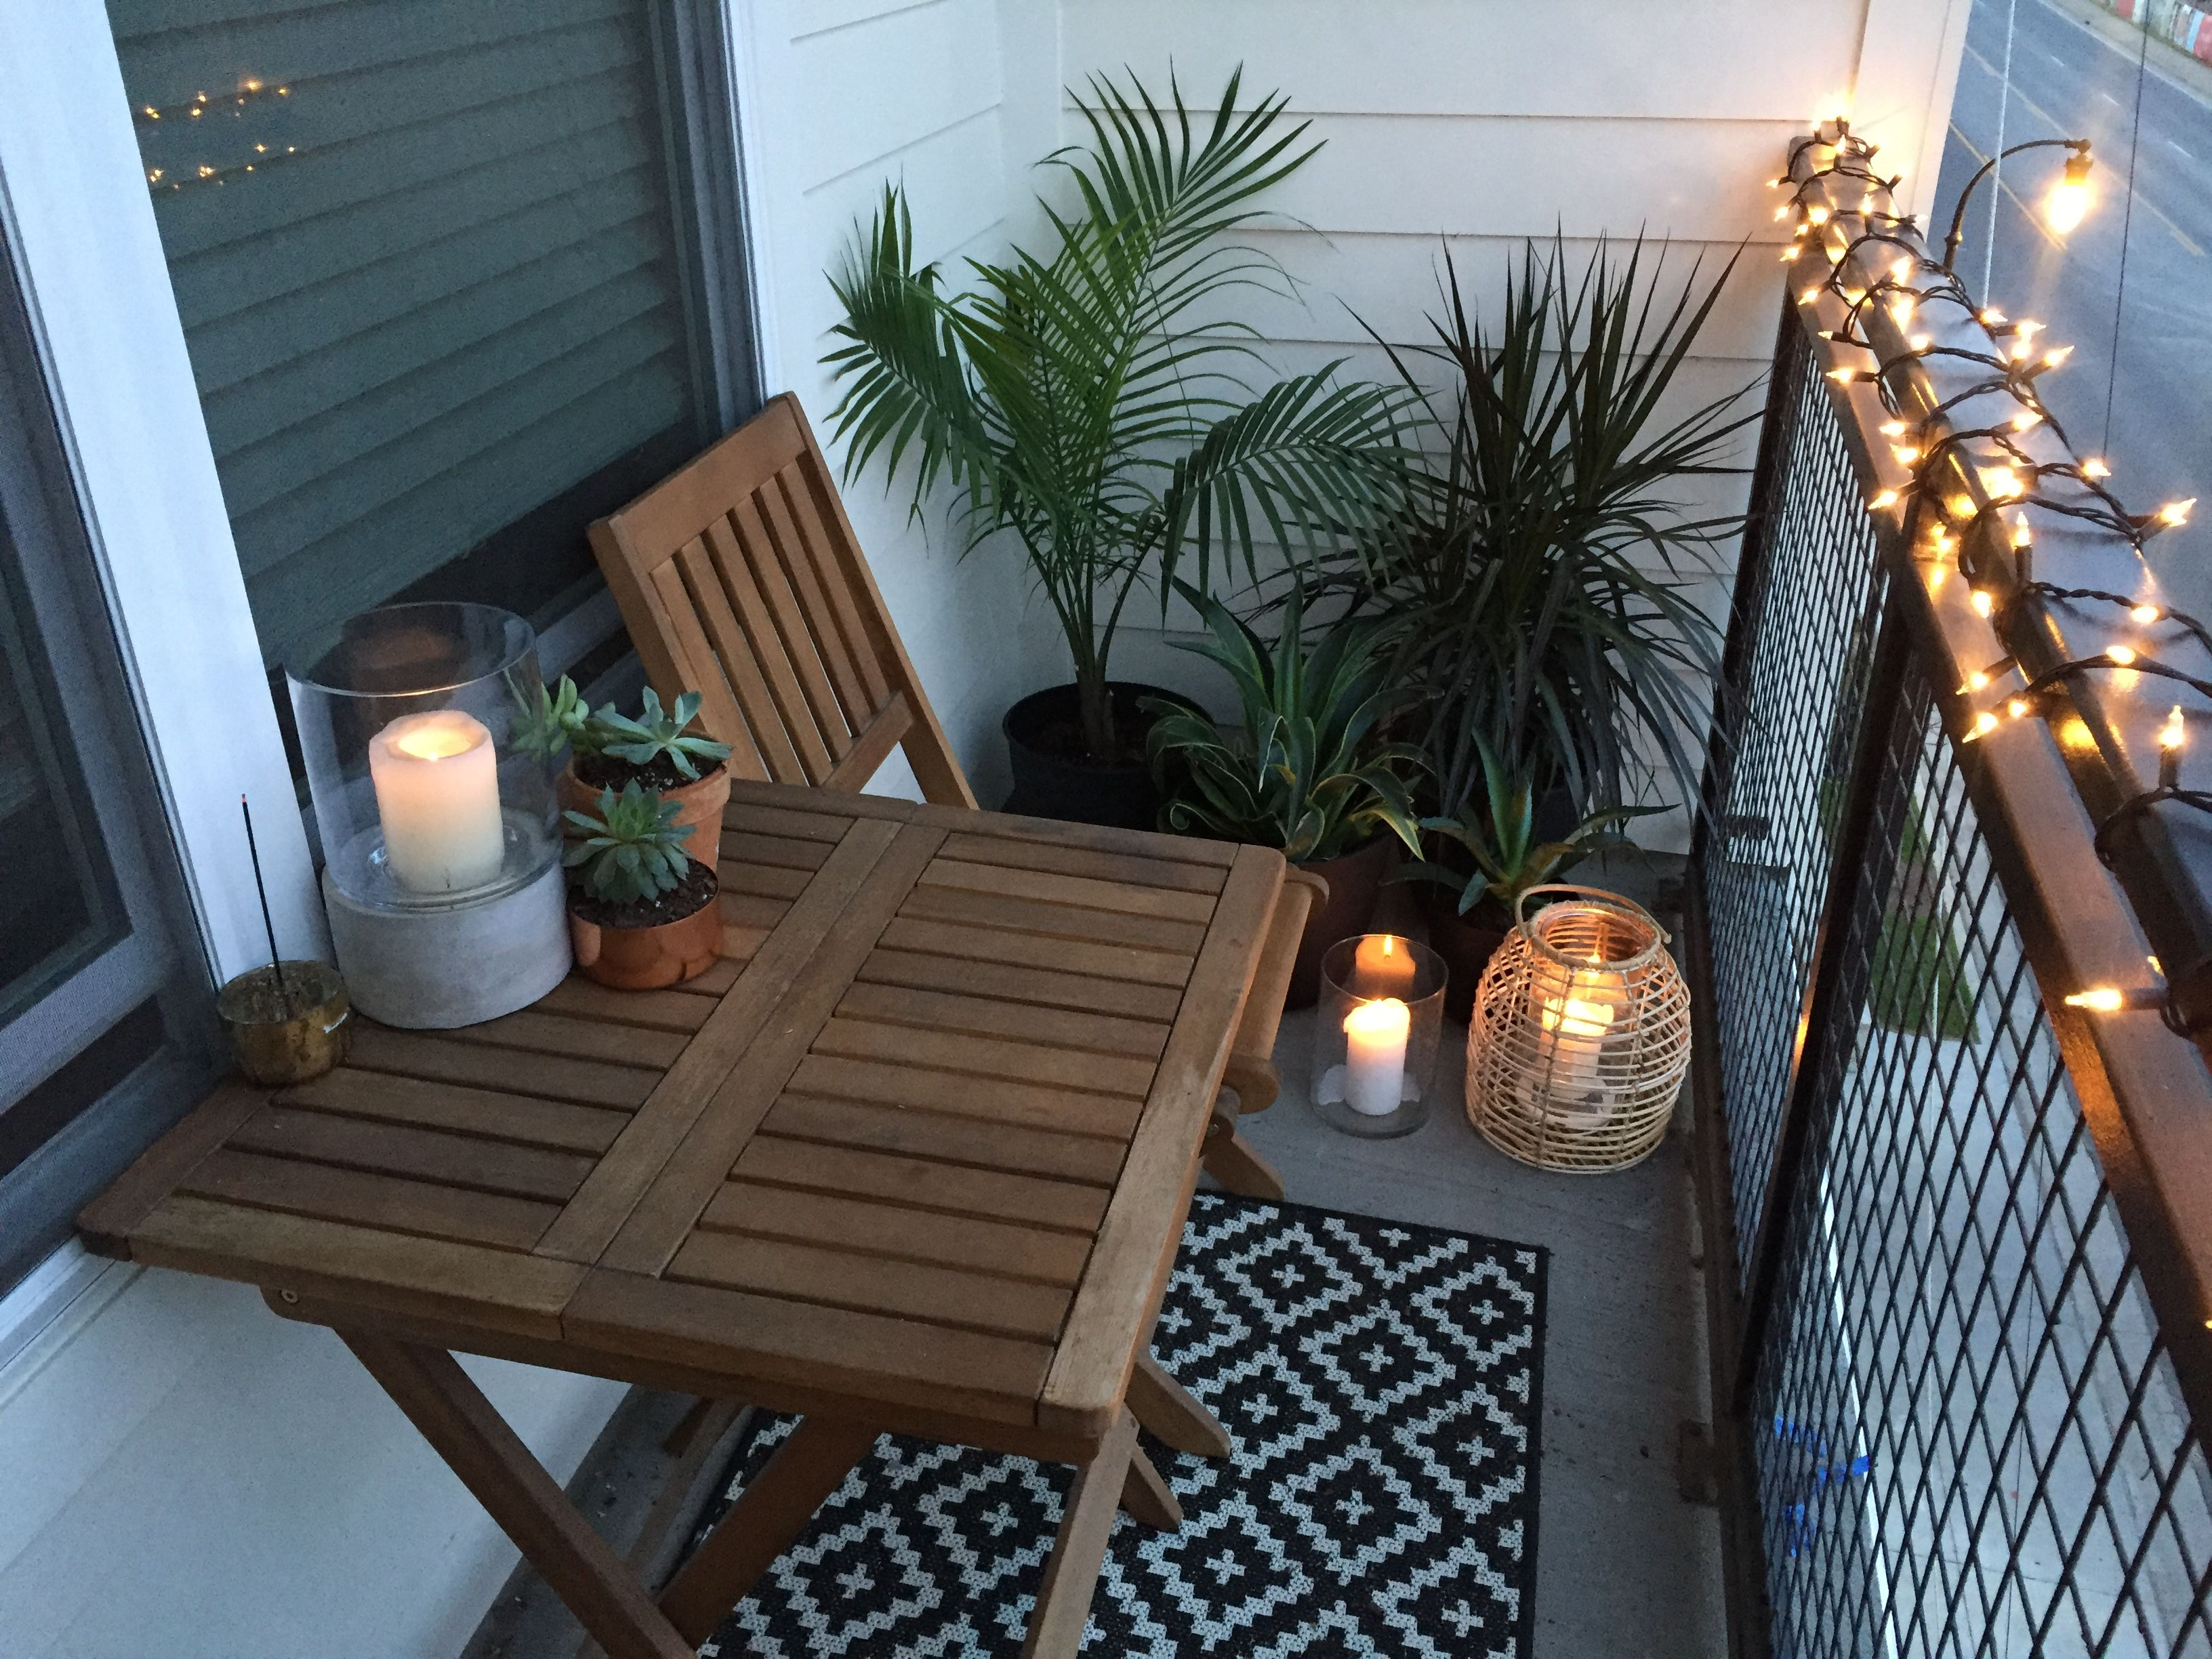 apartment small balcony decor ideas and design balcony garden with candles lights an on christmas balcony decorations apartment patio id=19047